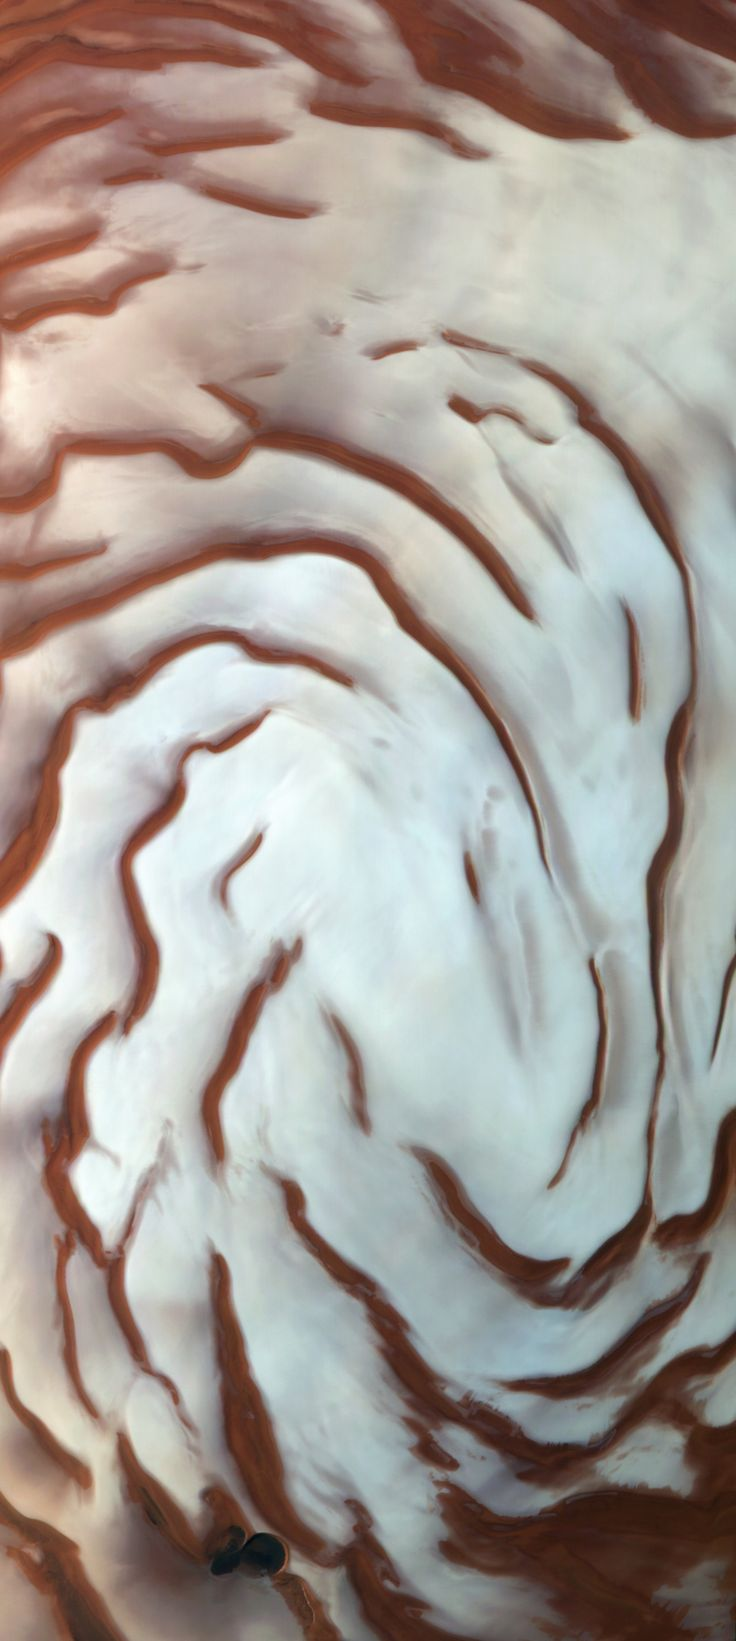 Boreales Scopuli - The north polar cap of Mars and the spiraling network of troughs, hundreds of meters deep, known as the Boreales Scopuli. The full cap is roughly 1000km across. Imaged by ESA's Mars Express orbiter.